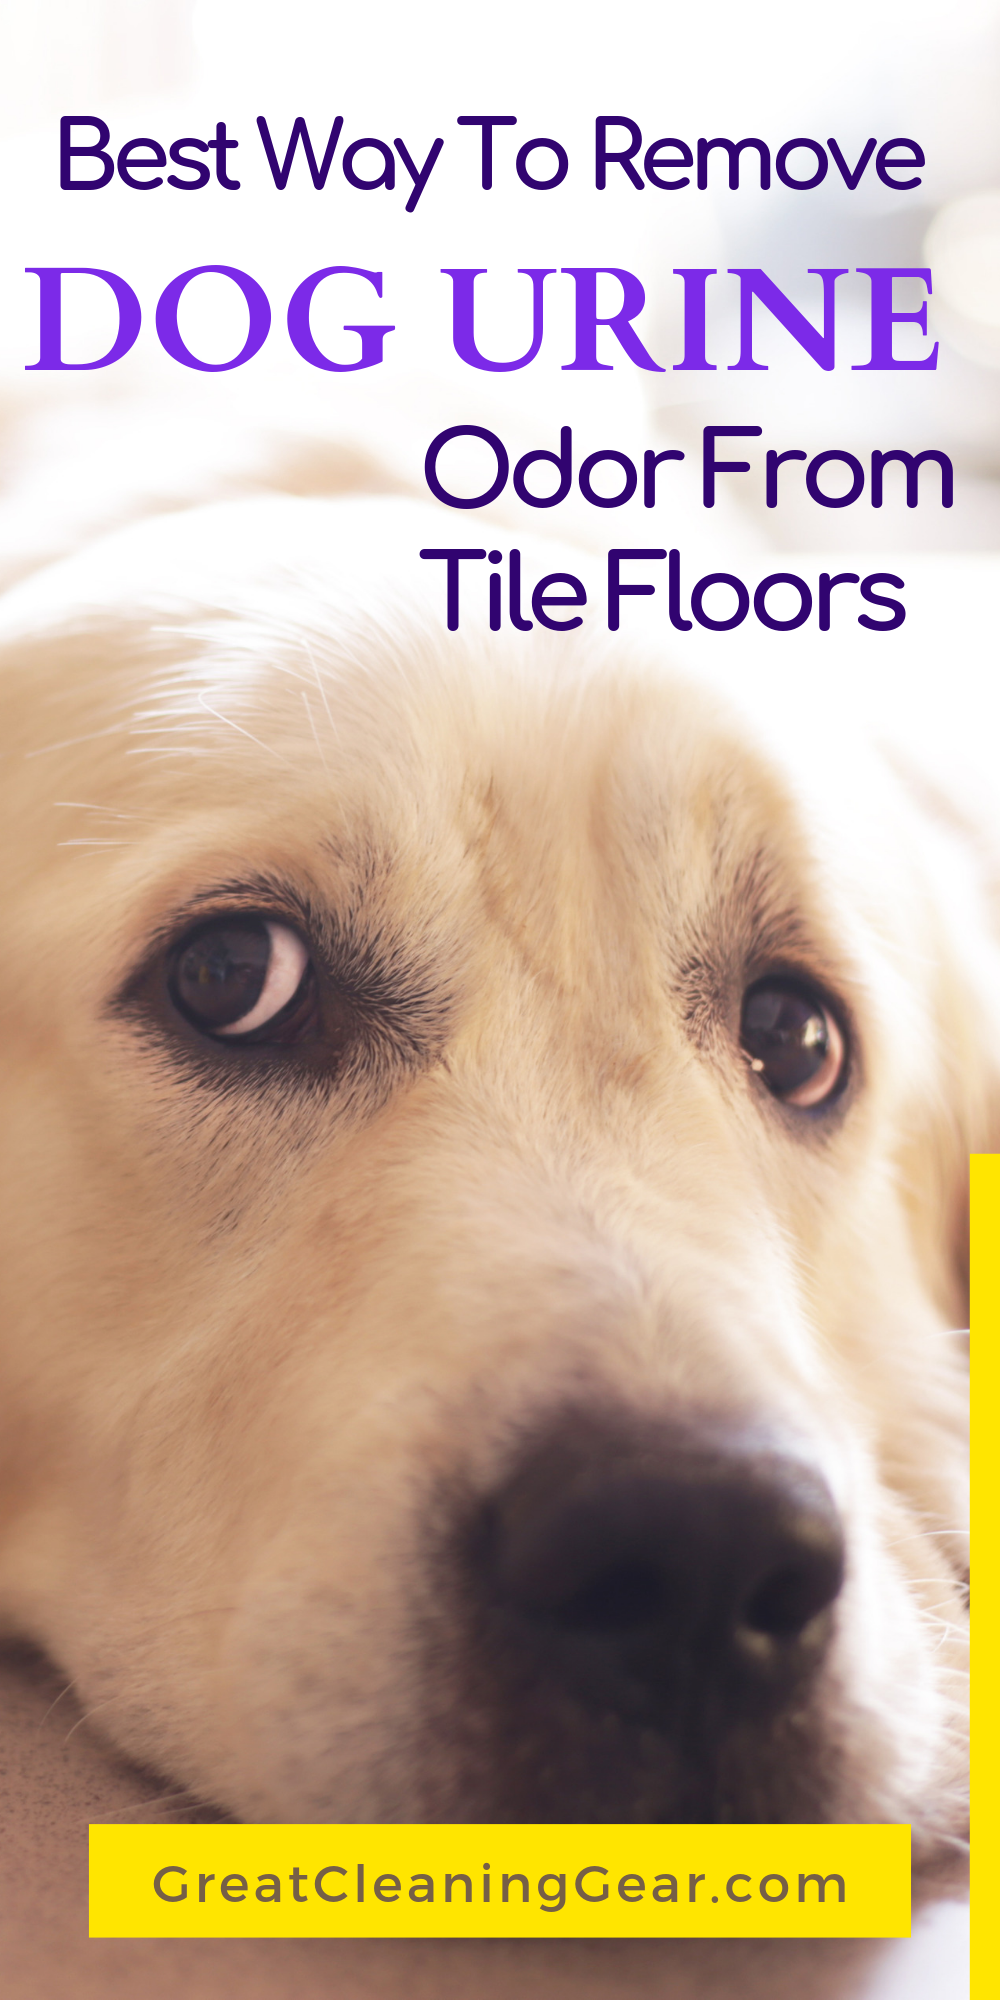 How to Remove Dog Urine Odor from Tile Floors  Great Cleaning Gear